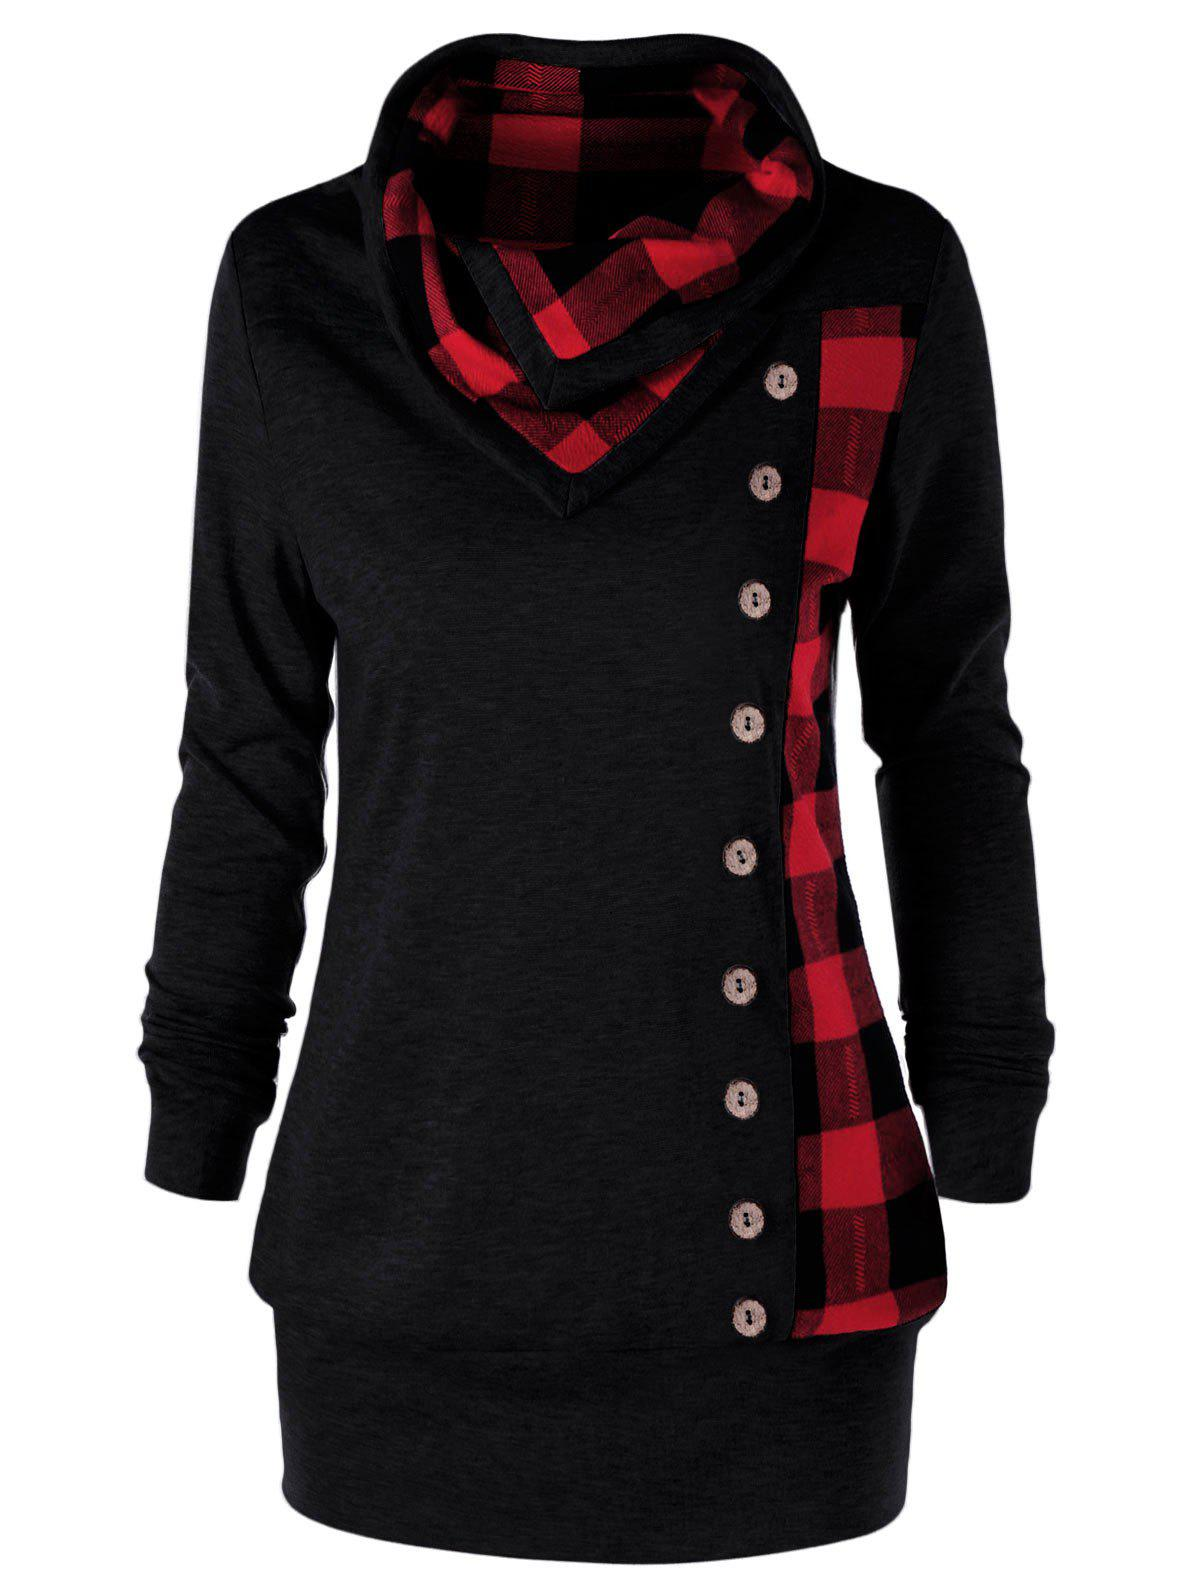 Store Plus Size Cowl Neck Plaid Sweatshirt